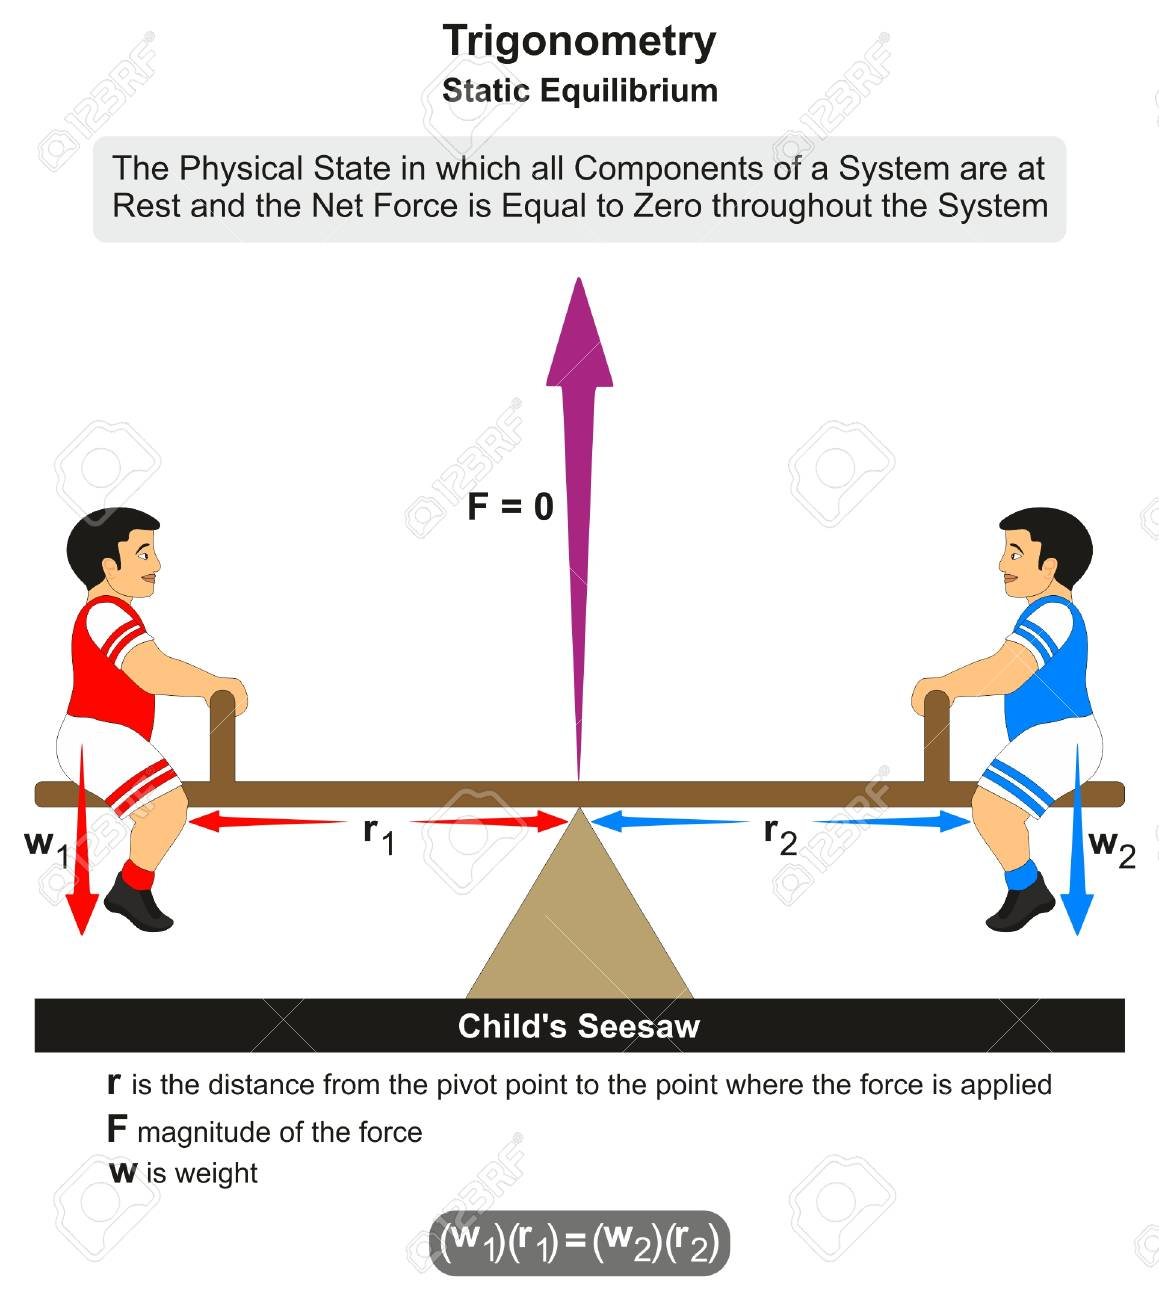 Trigonometry static equilibrium infographic diagram with fulcrum trigonometry static equilibrium infographic diagram with fulcrum example of childs seesaw where force pooptronica